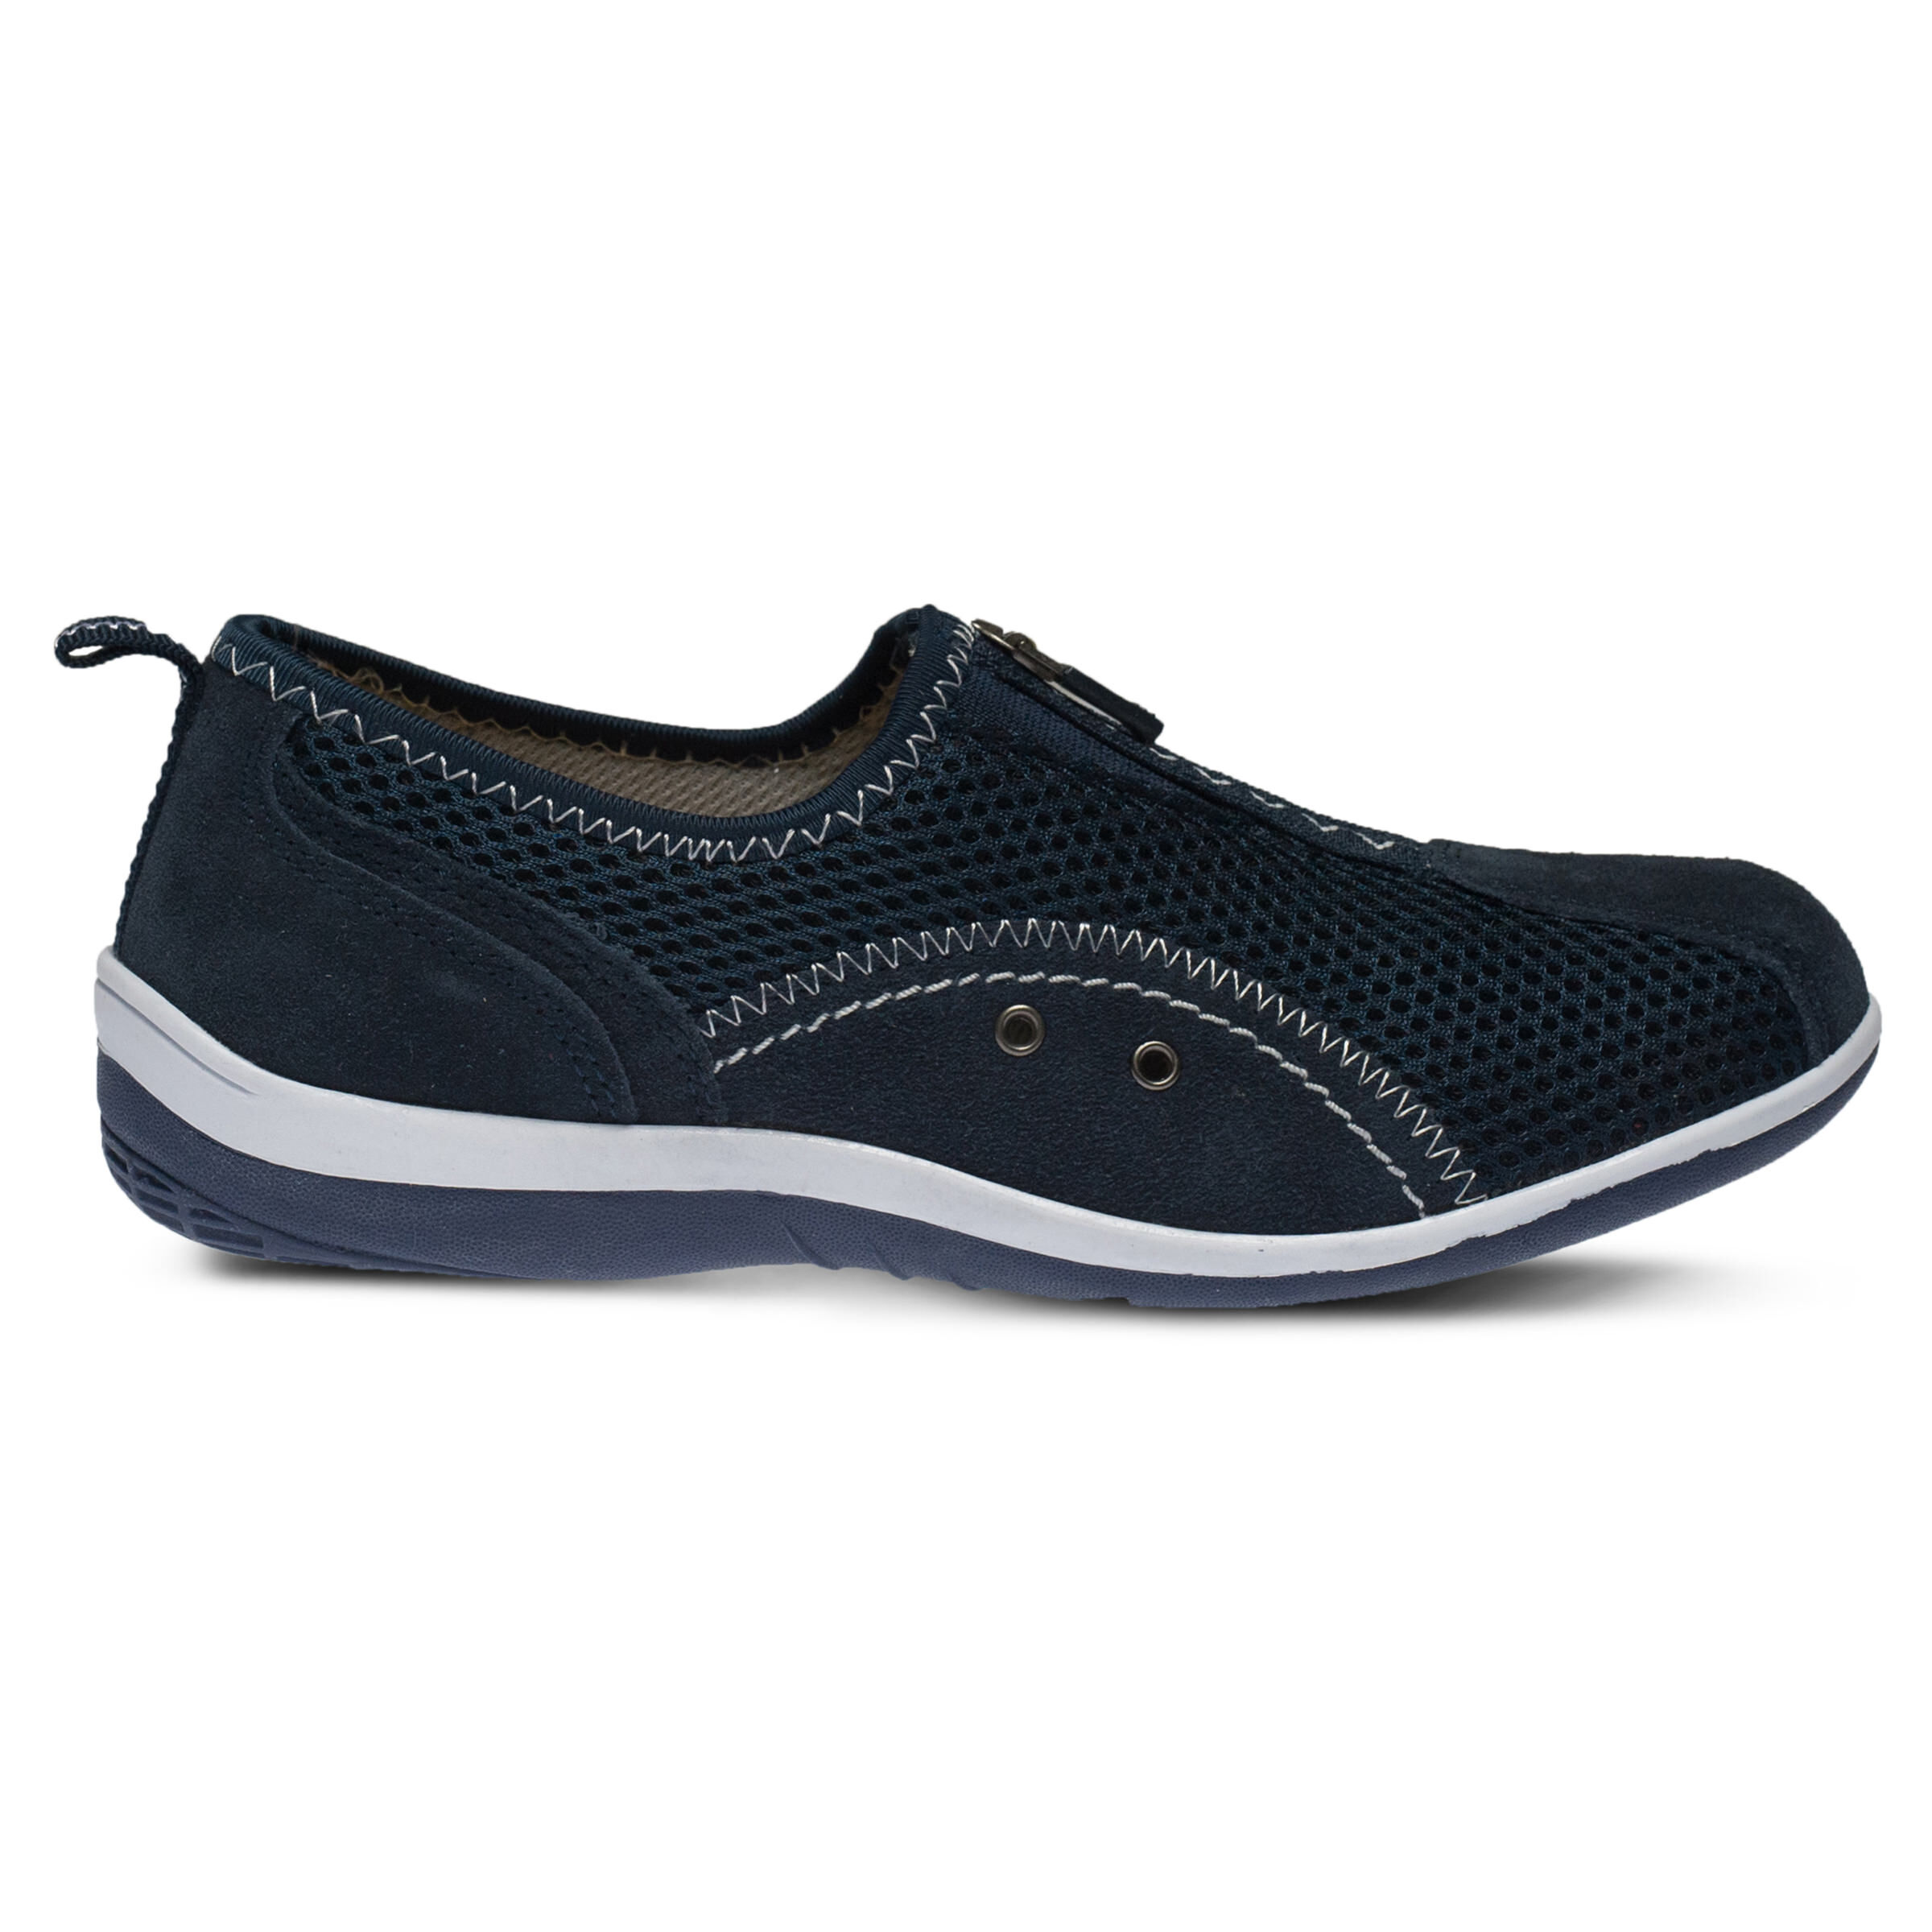 Wholesale Prices Women's SPRING STEP Racer Slip-Ons Navy